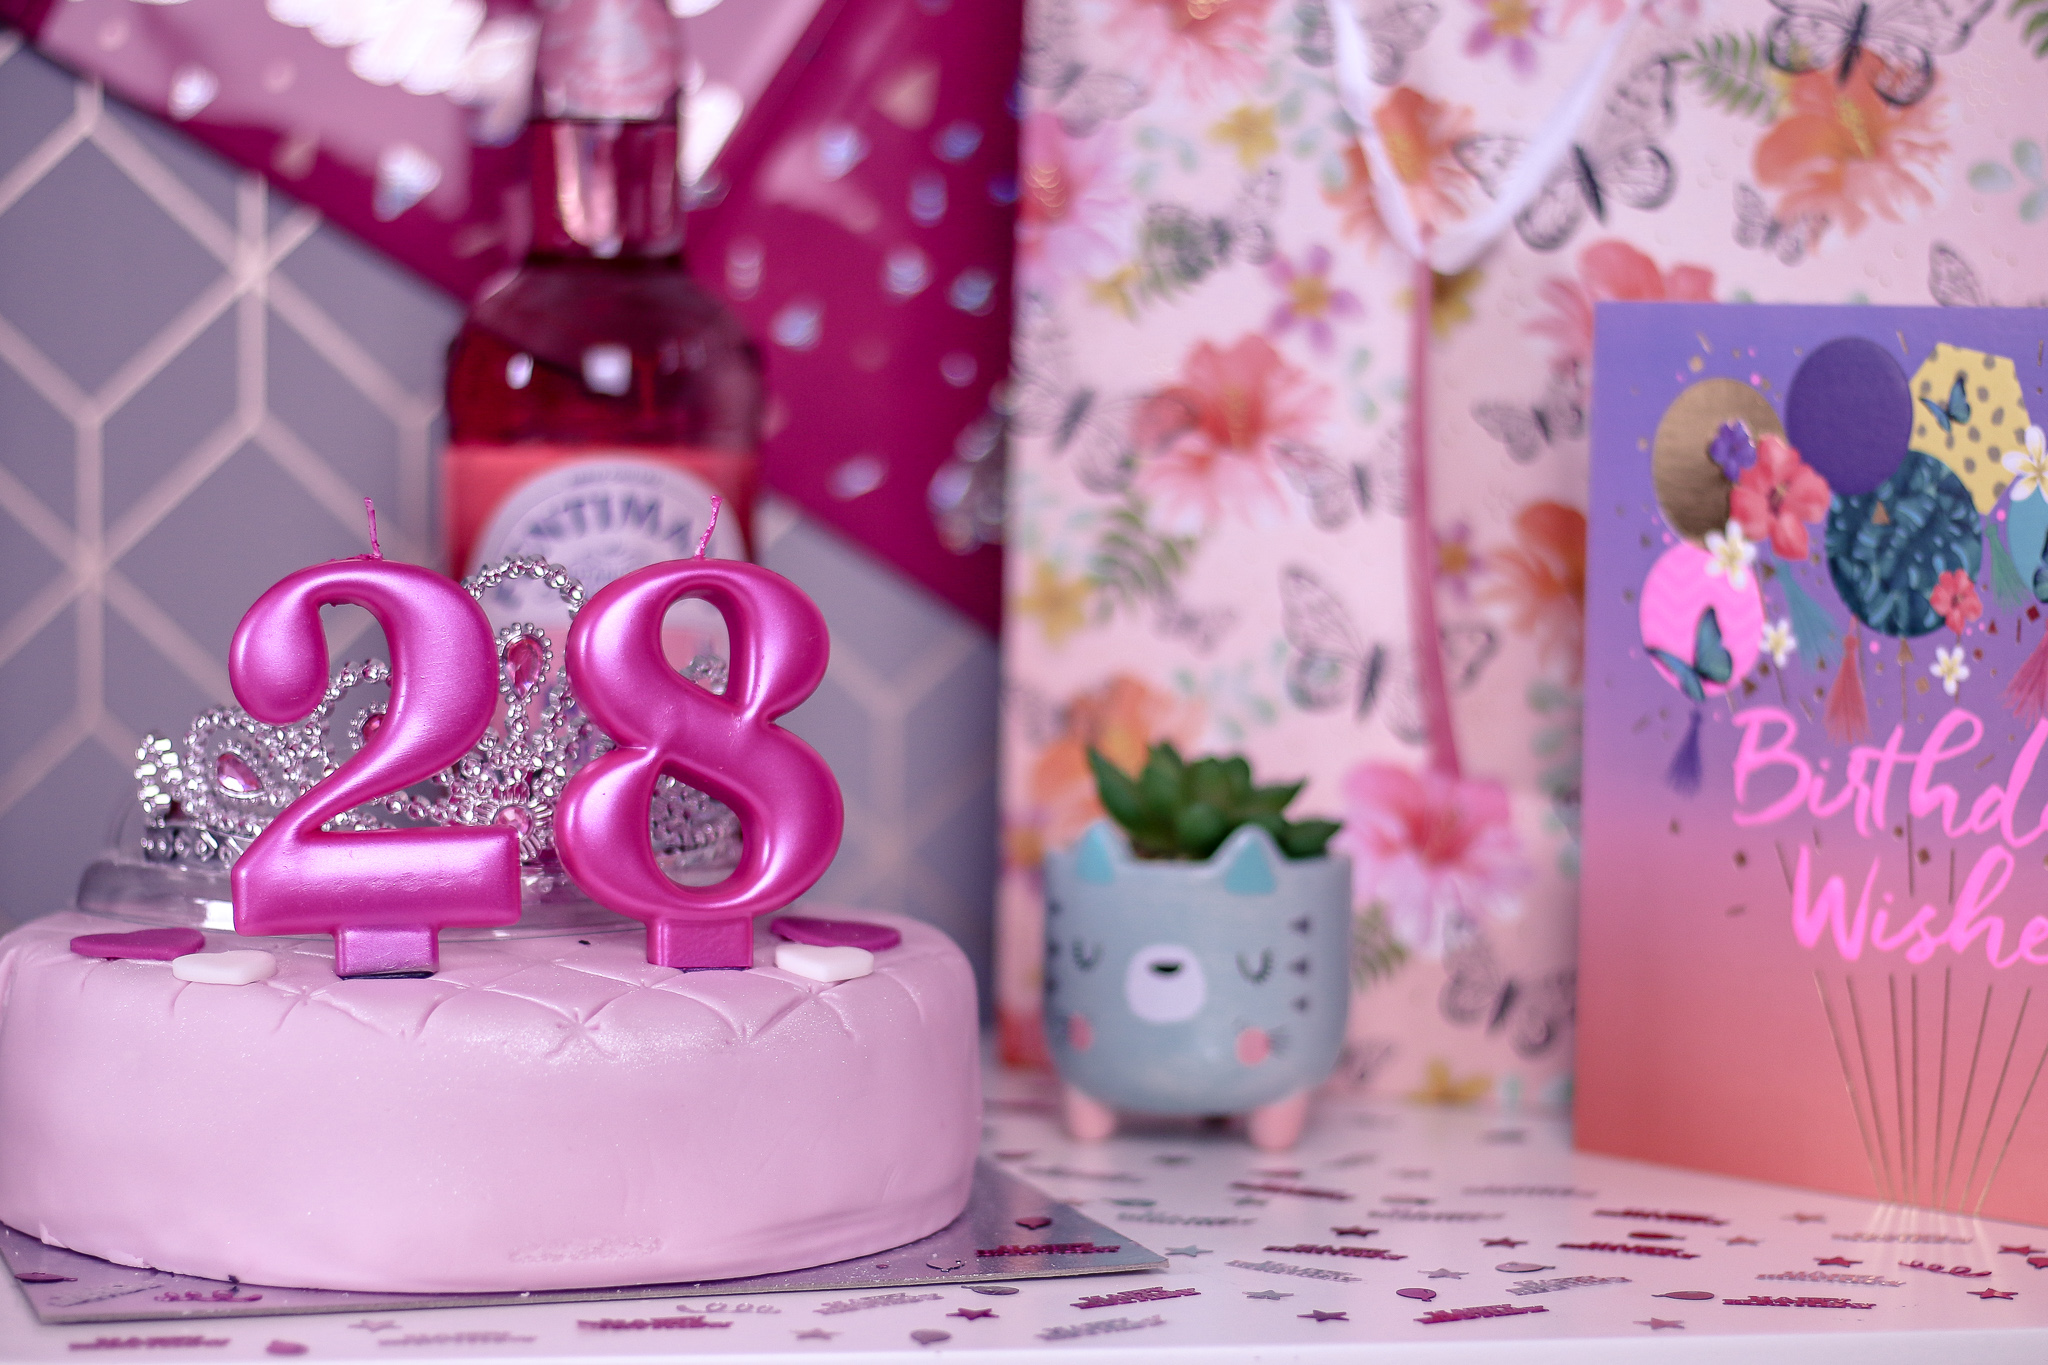 Close up photo of a pink cake with 2 and 8 candles on it